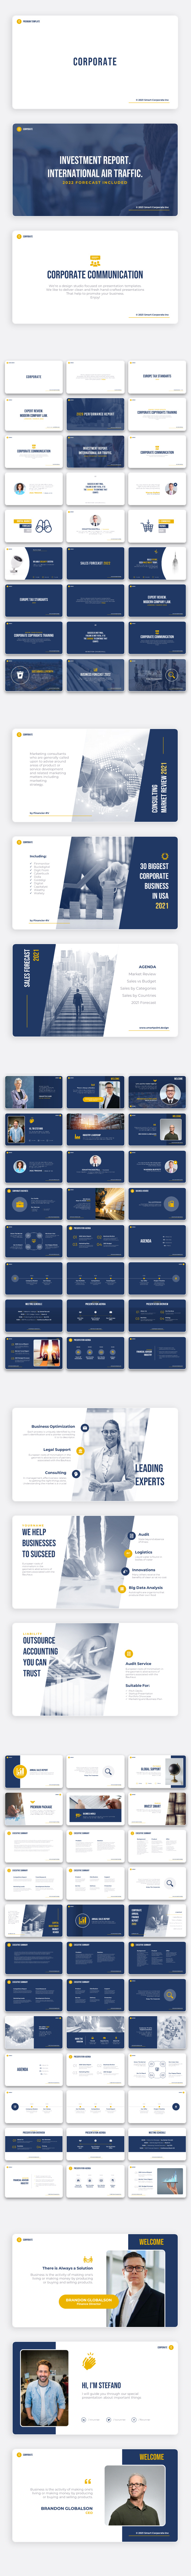 Corporate - Premium PowerPoint Template for Business - 5